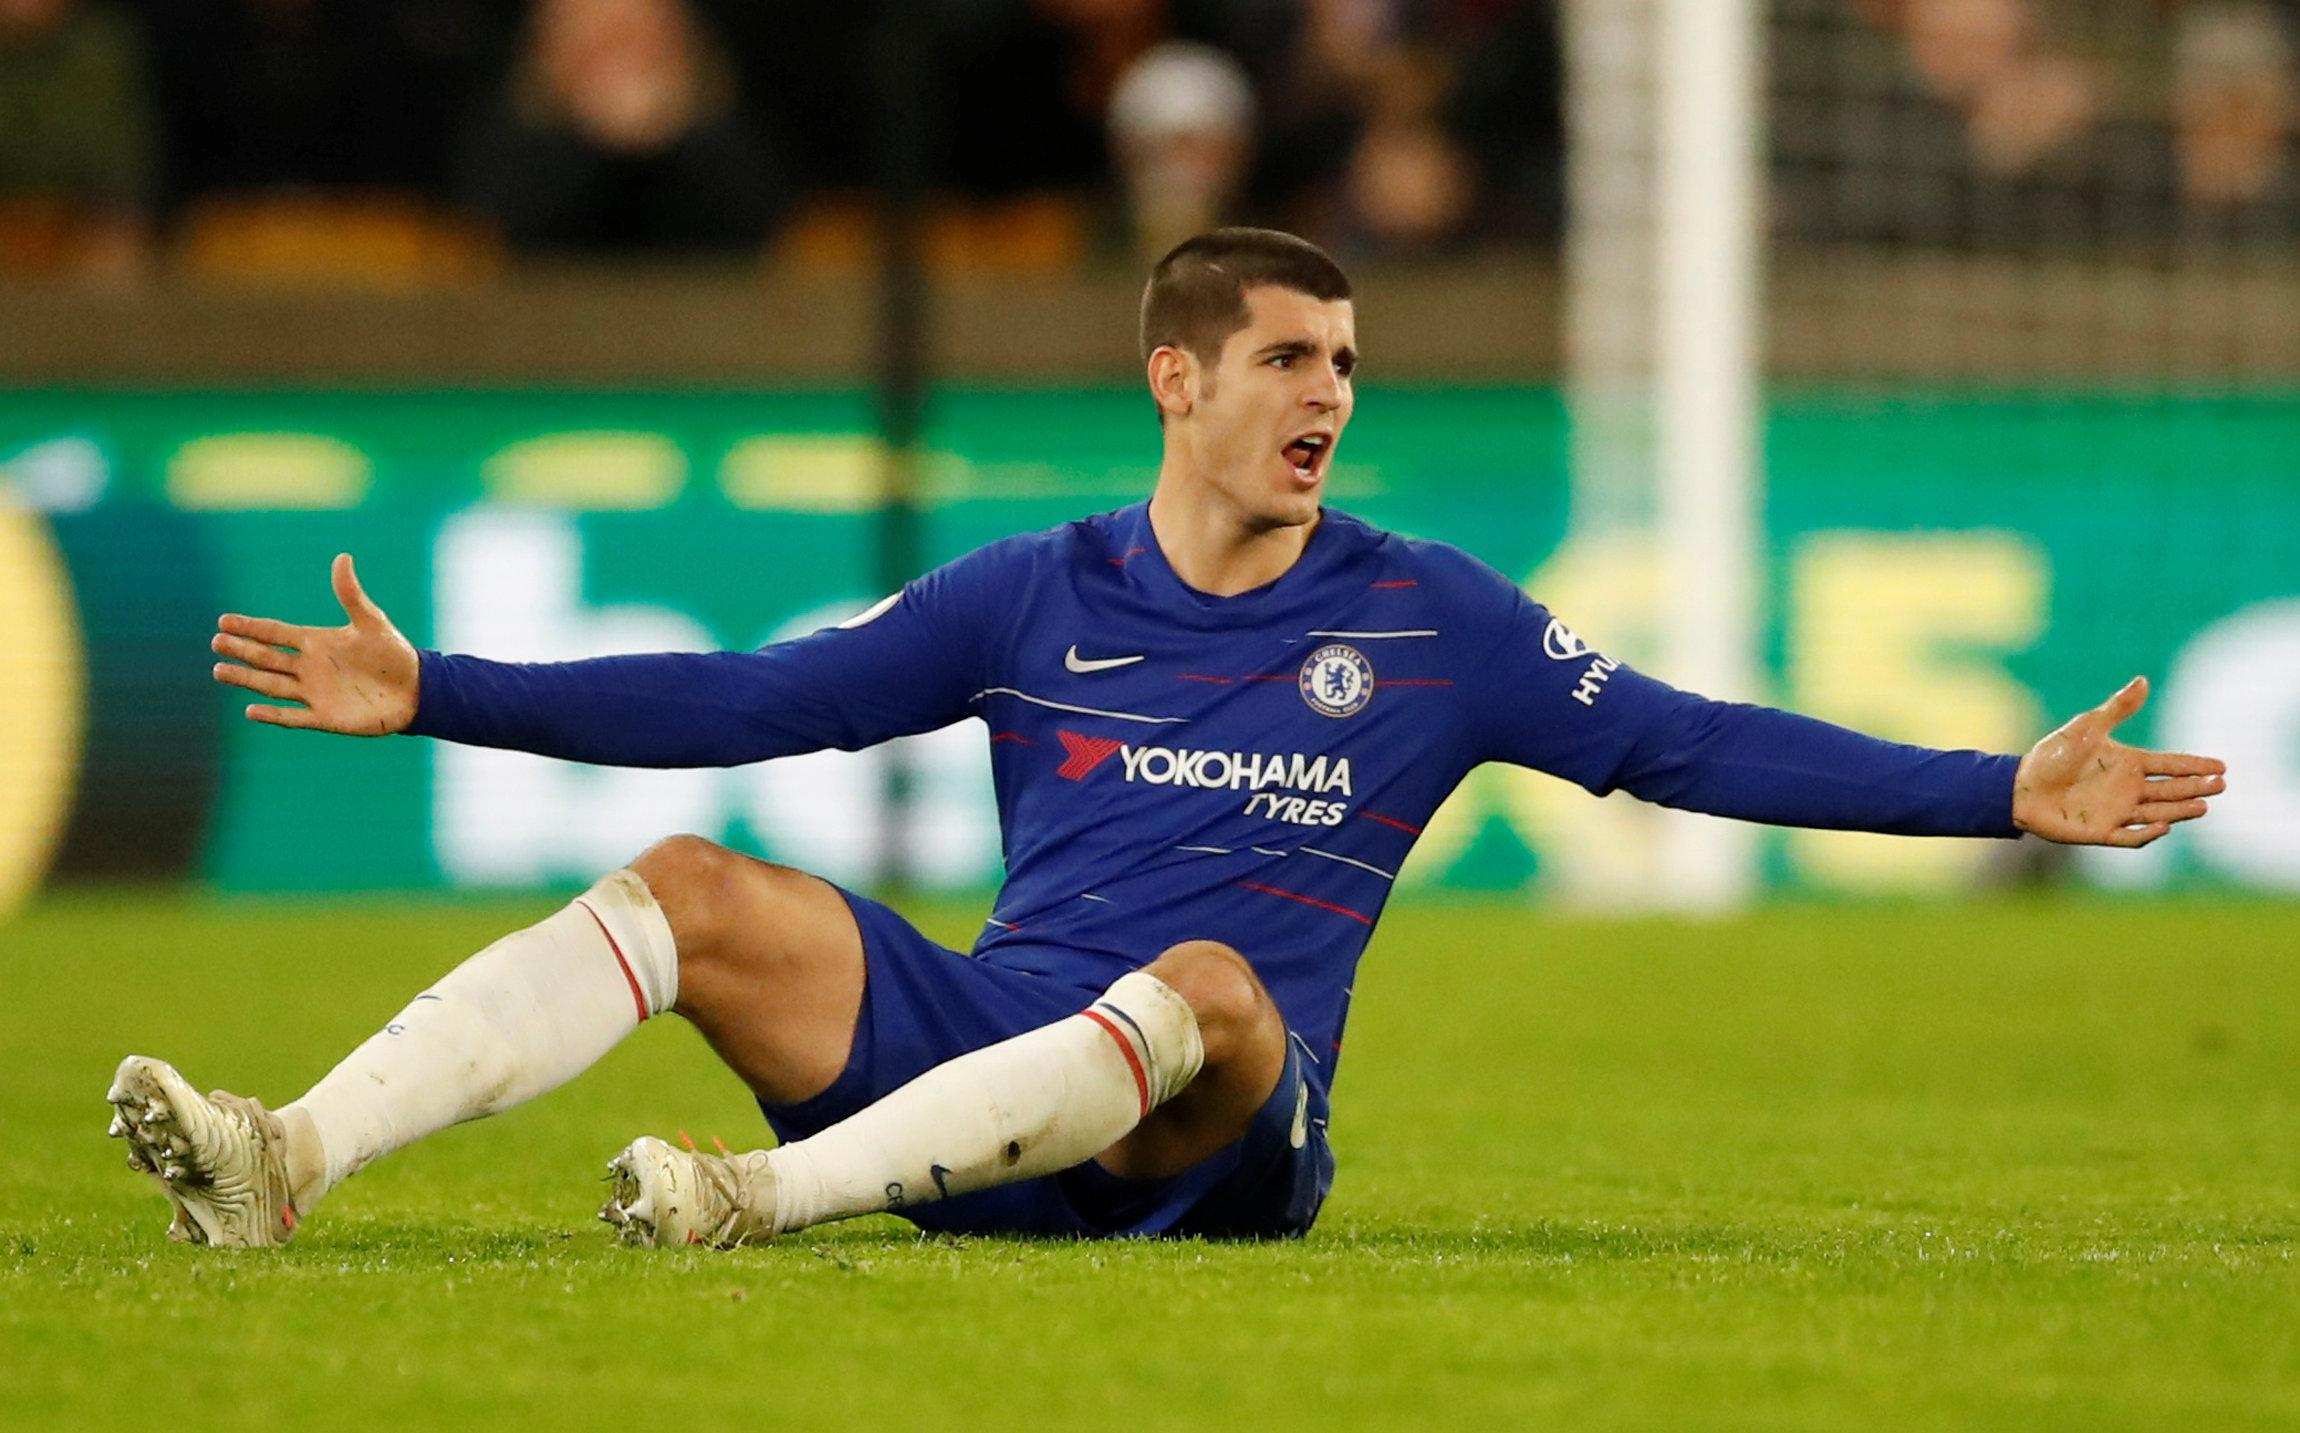 Morata, 26, is without a goal in the Premier League since scoring twice against Crystal Palace on November 4